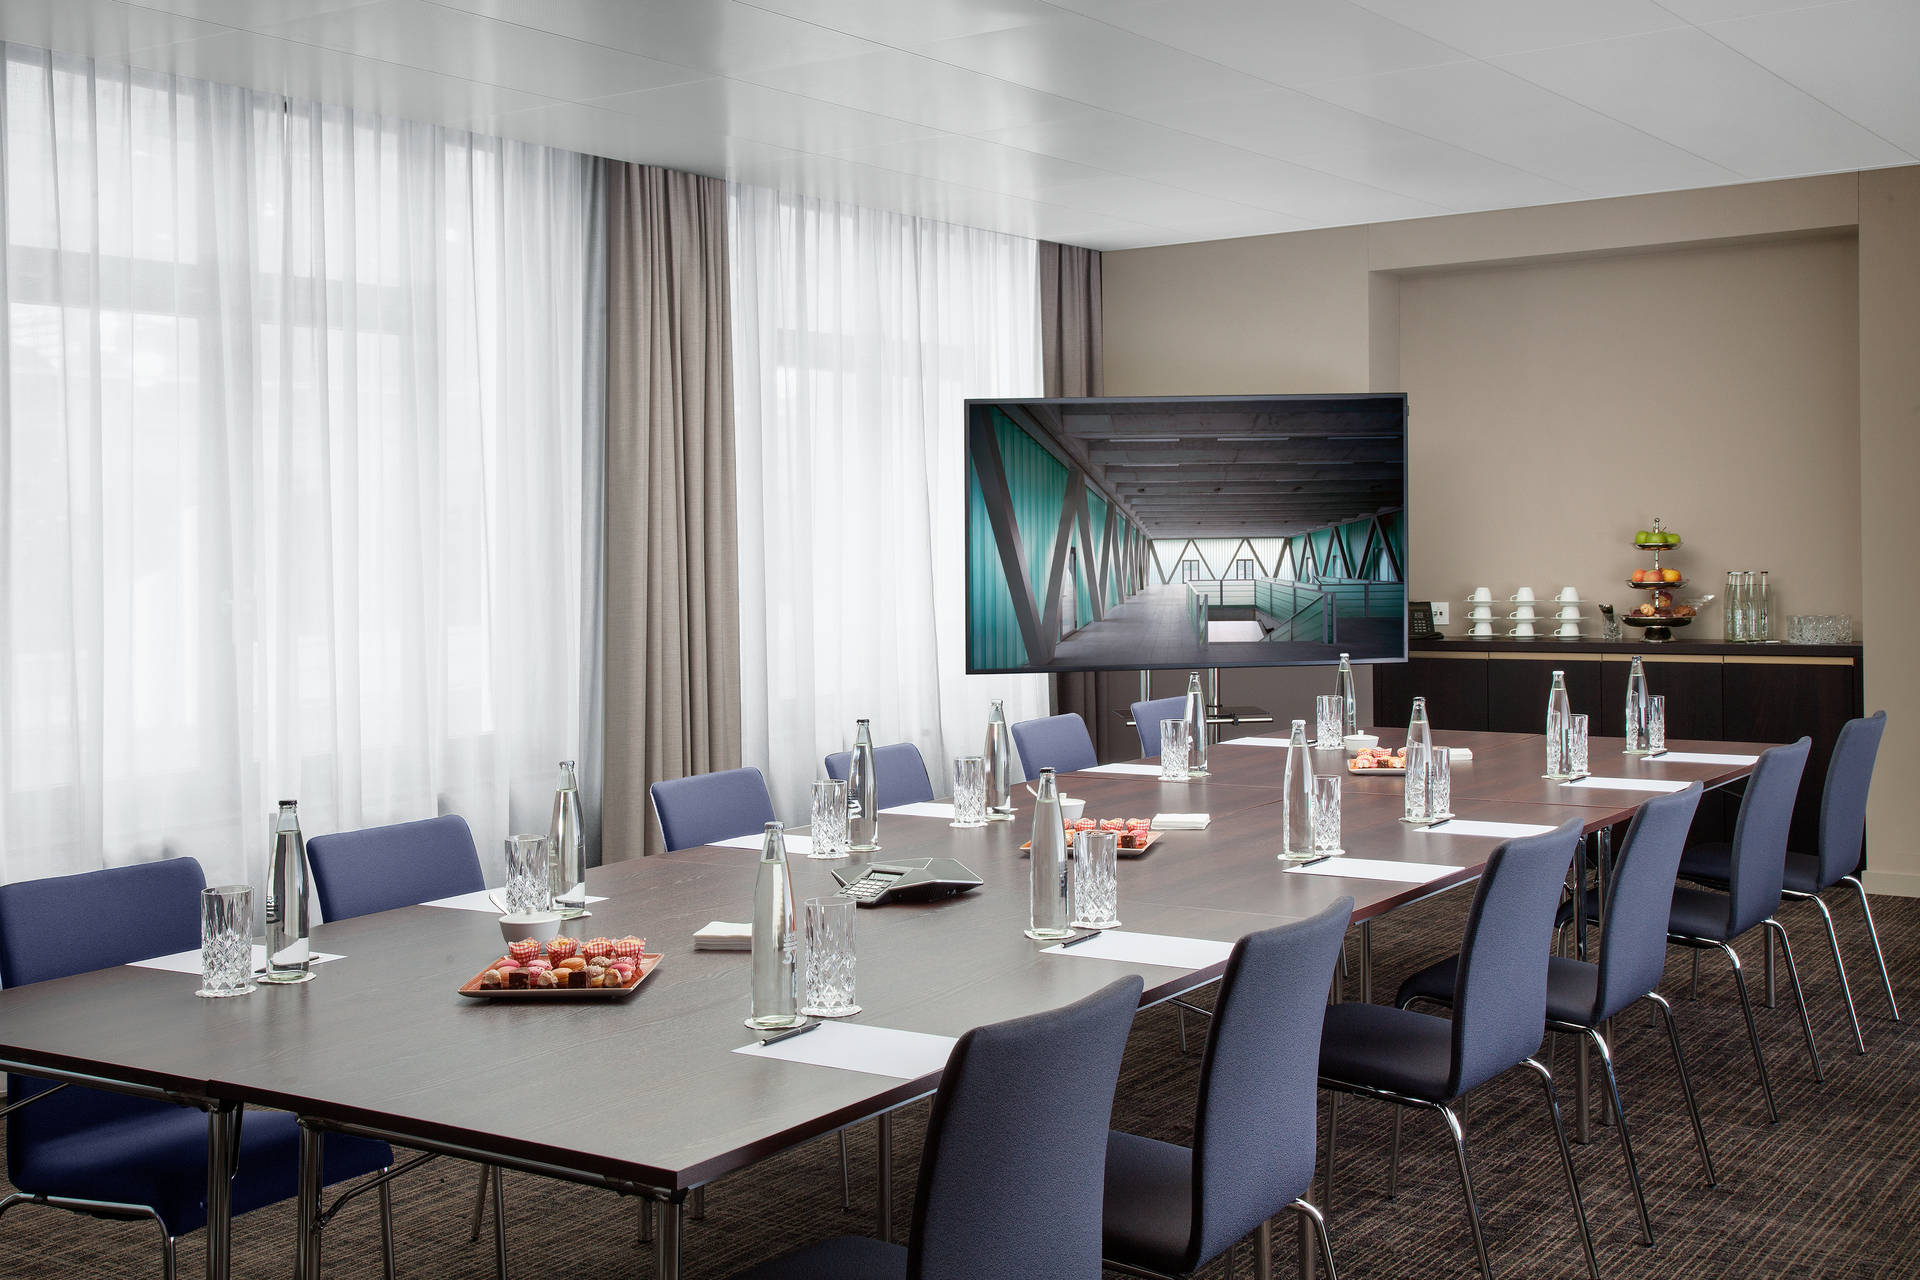 Conference room in ACASA Suites Zurich with state-of-the-art infrastructure